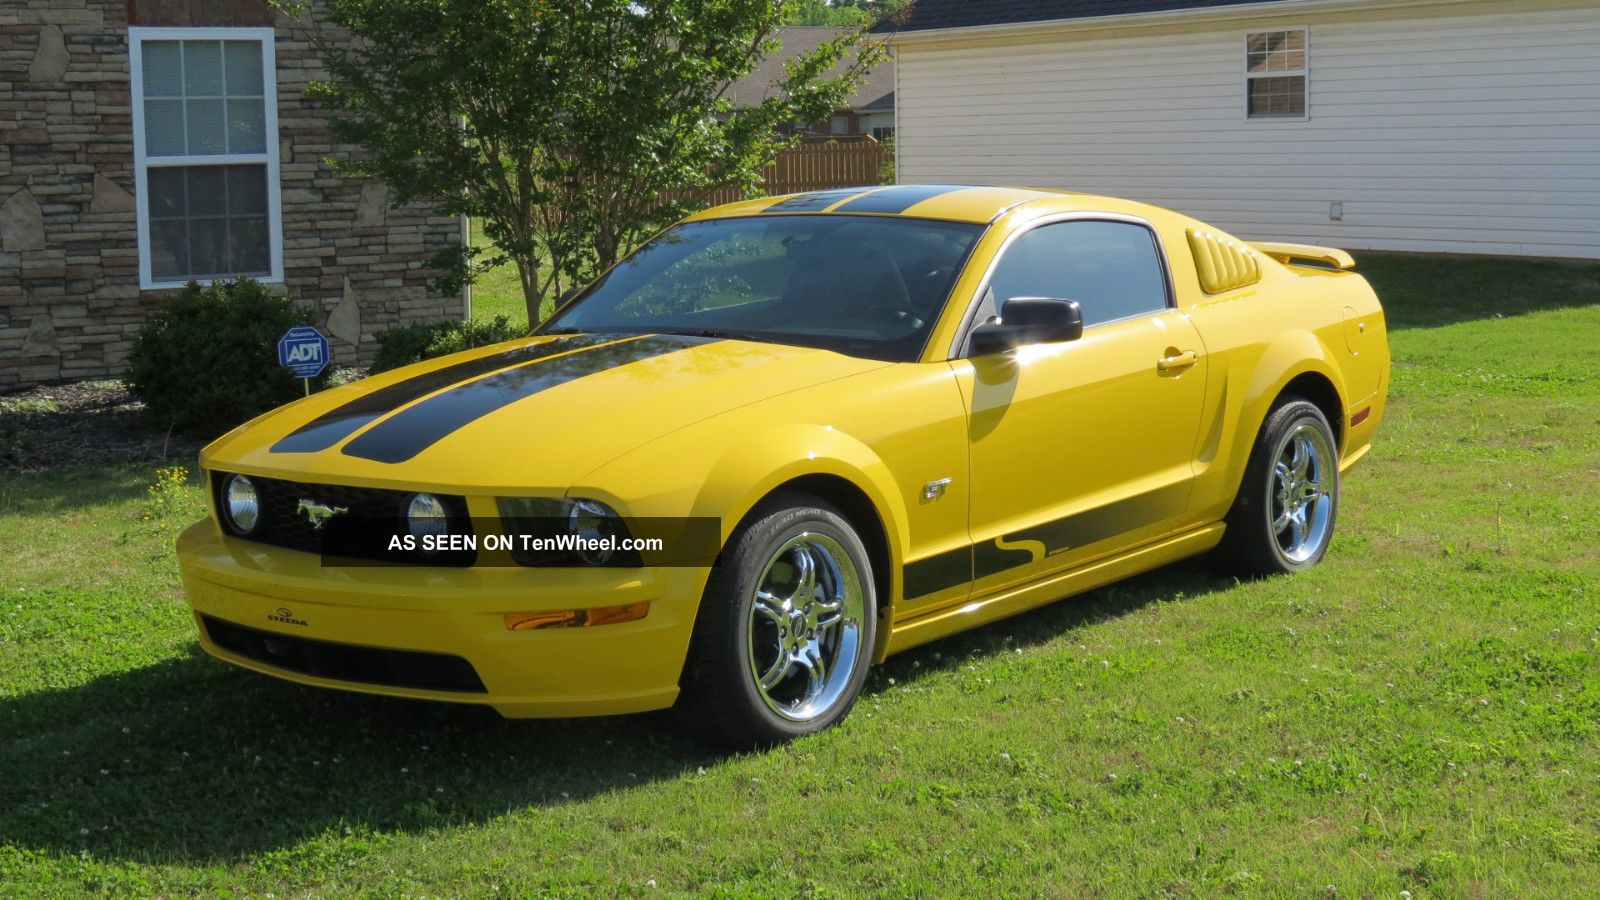 2005 ford mustang gt premium coupe 2 door 4 6l. Black Bedroom Furniture Sets. Home Design Ideas